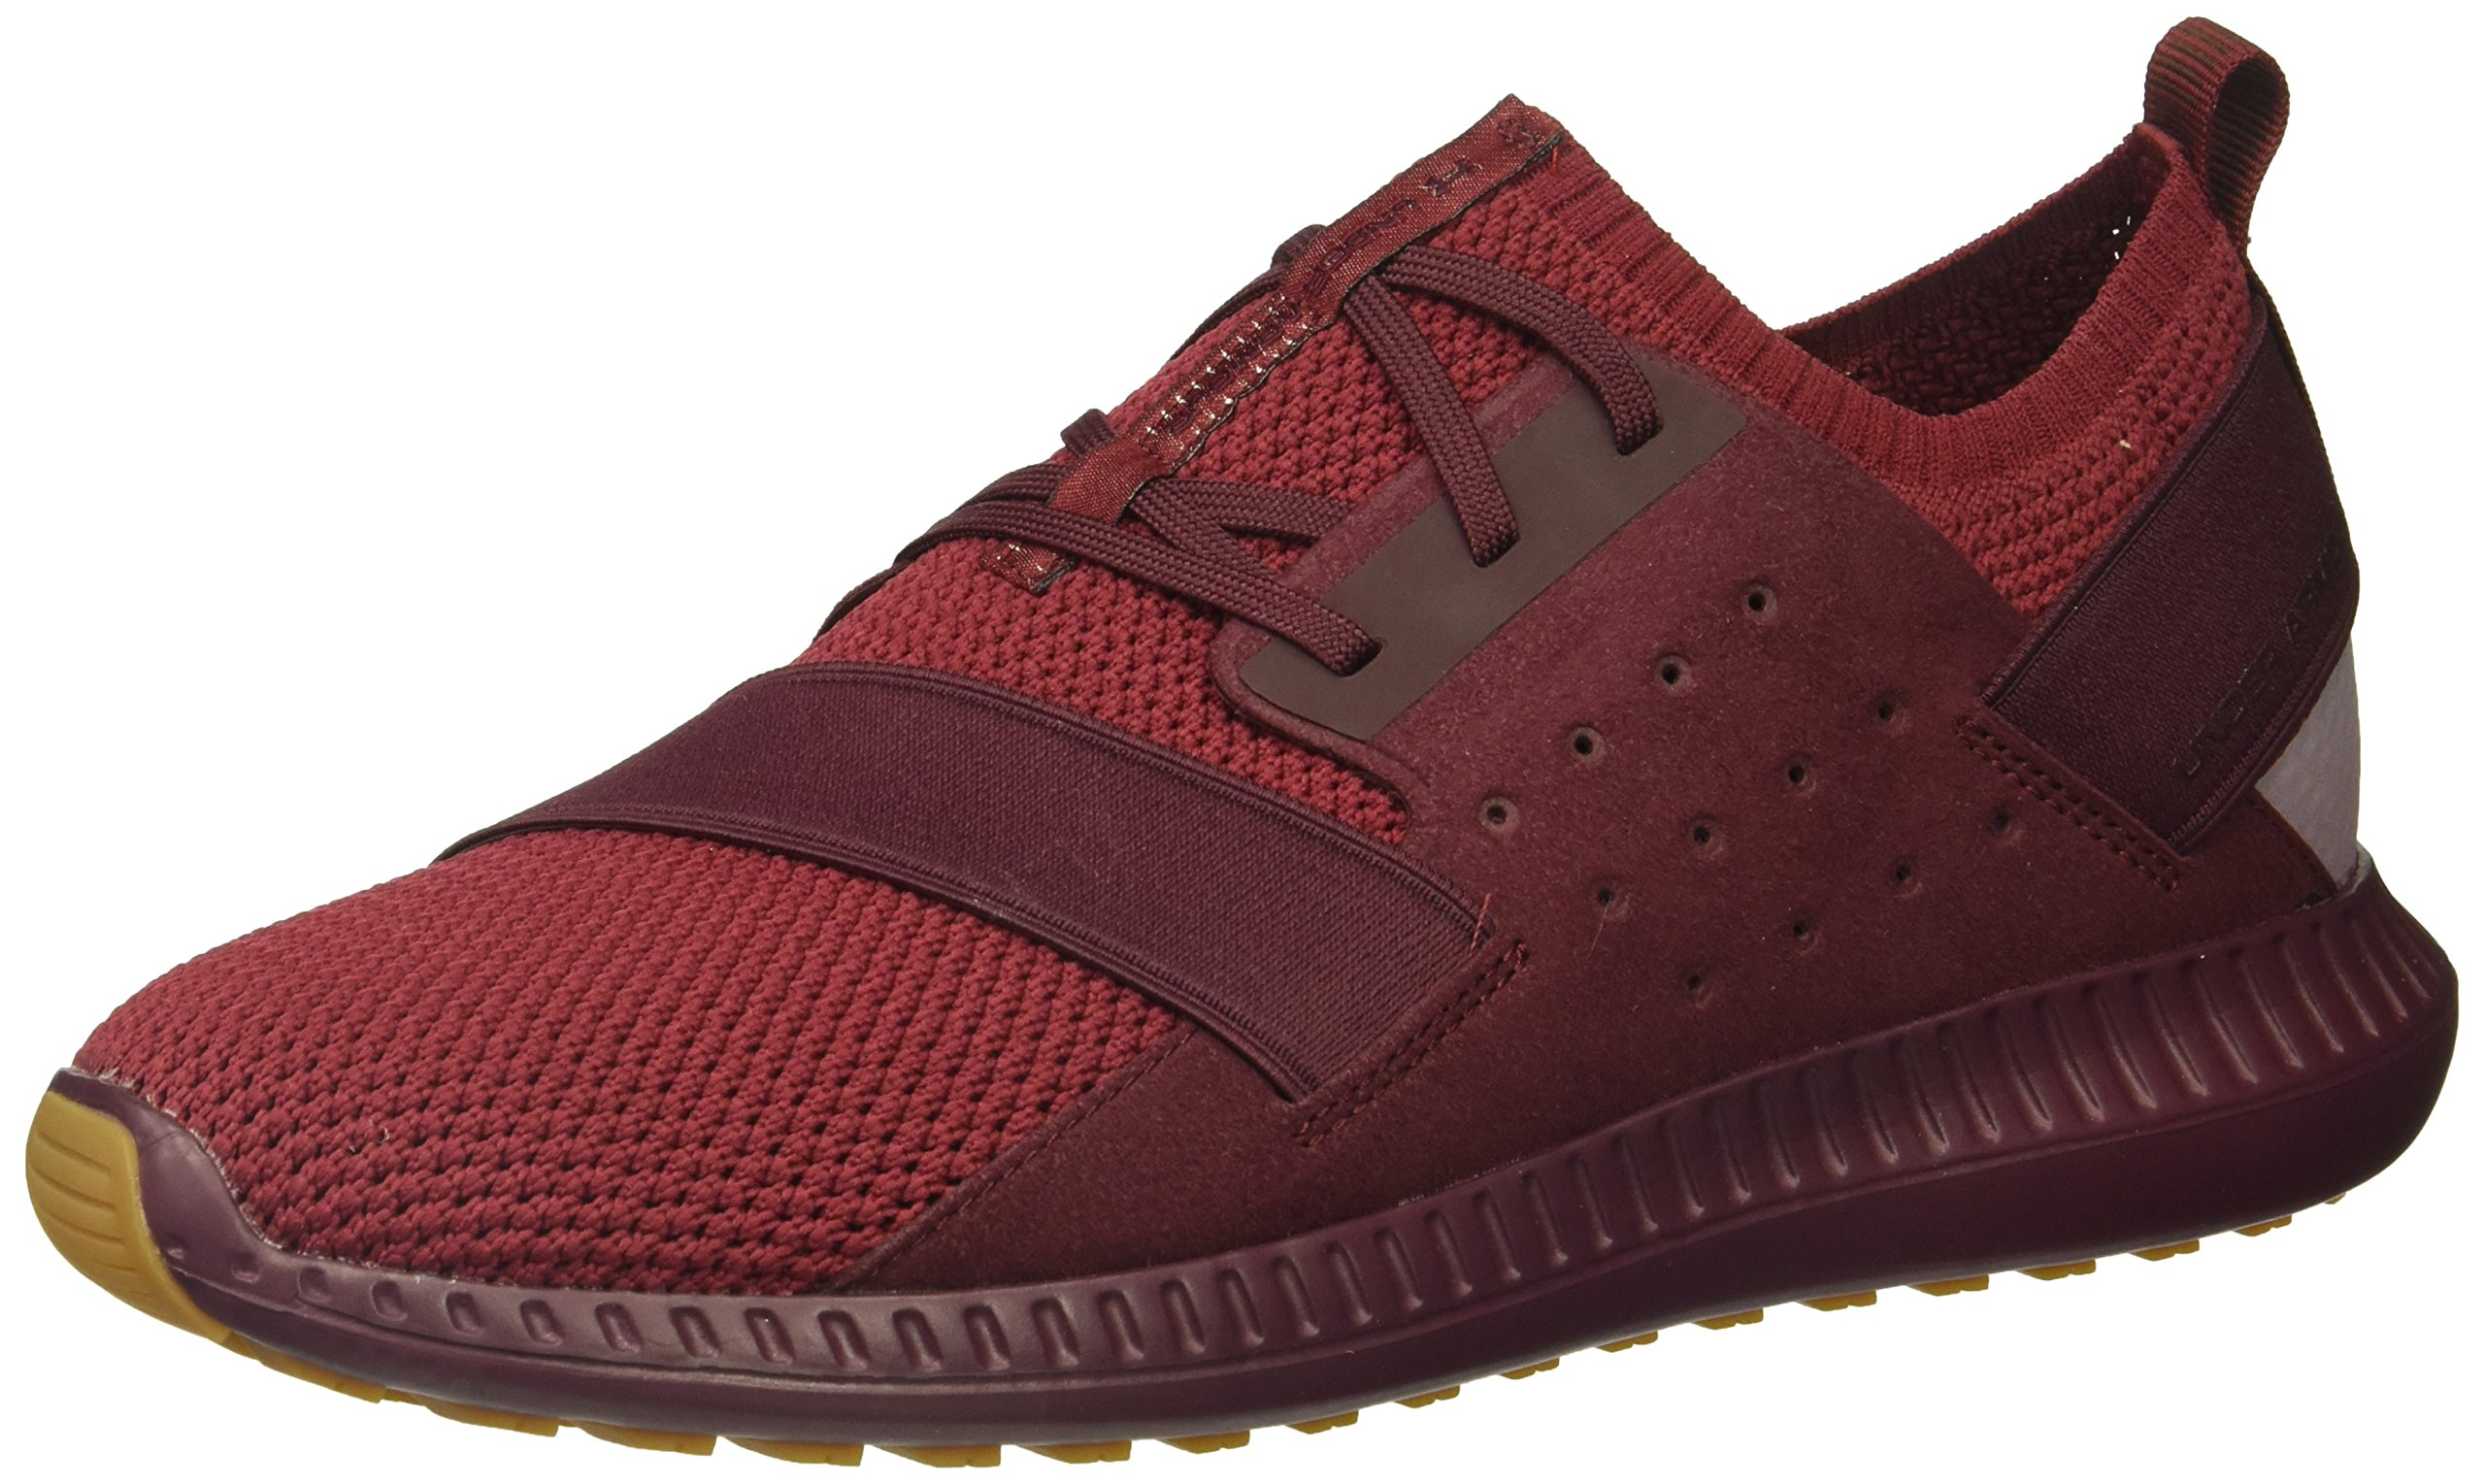 Under Armour Women's Threadborne Shift Sneaker, Cardinal (600)/Dark Maroon, 6